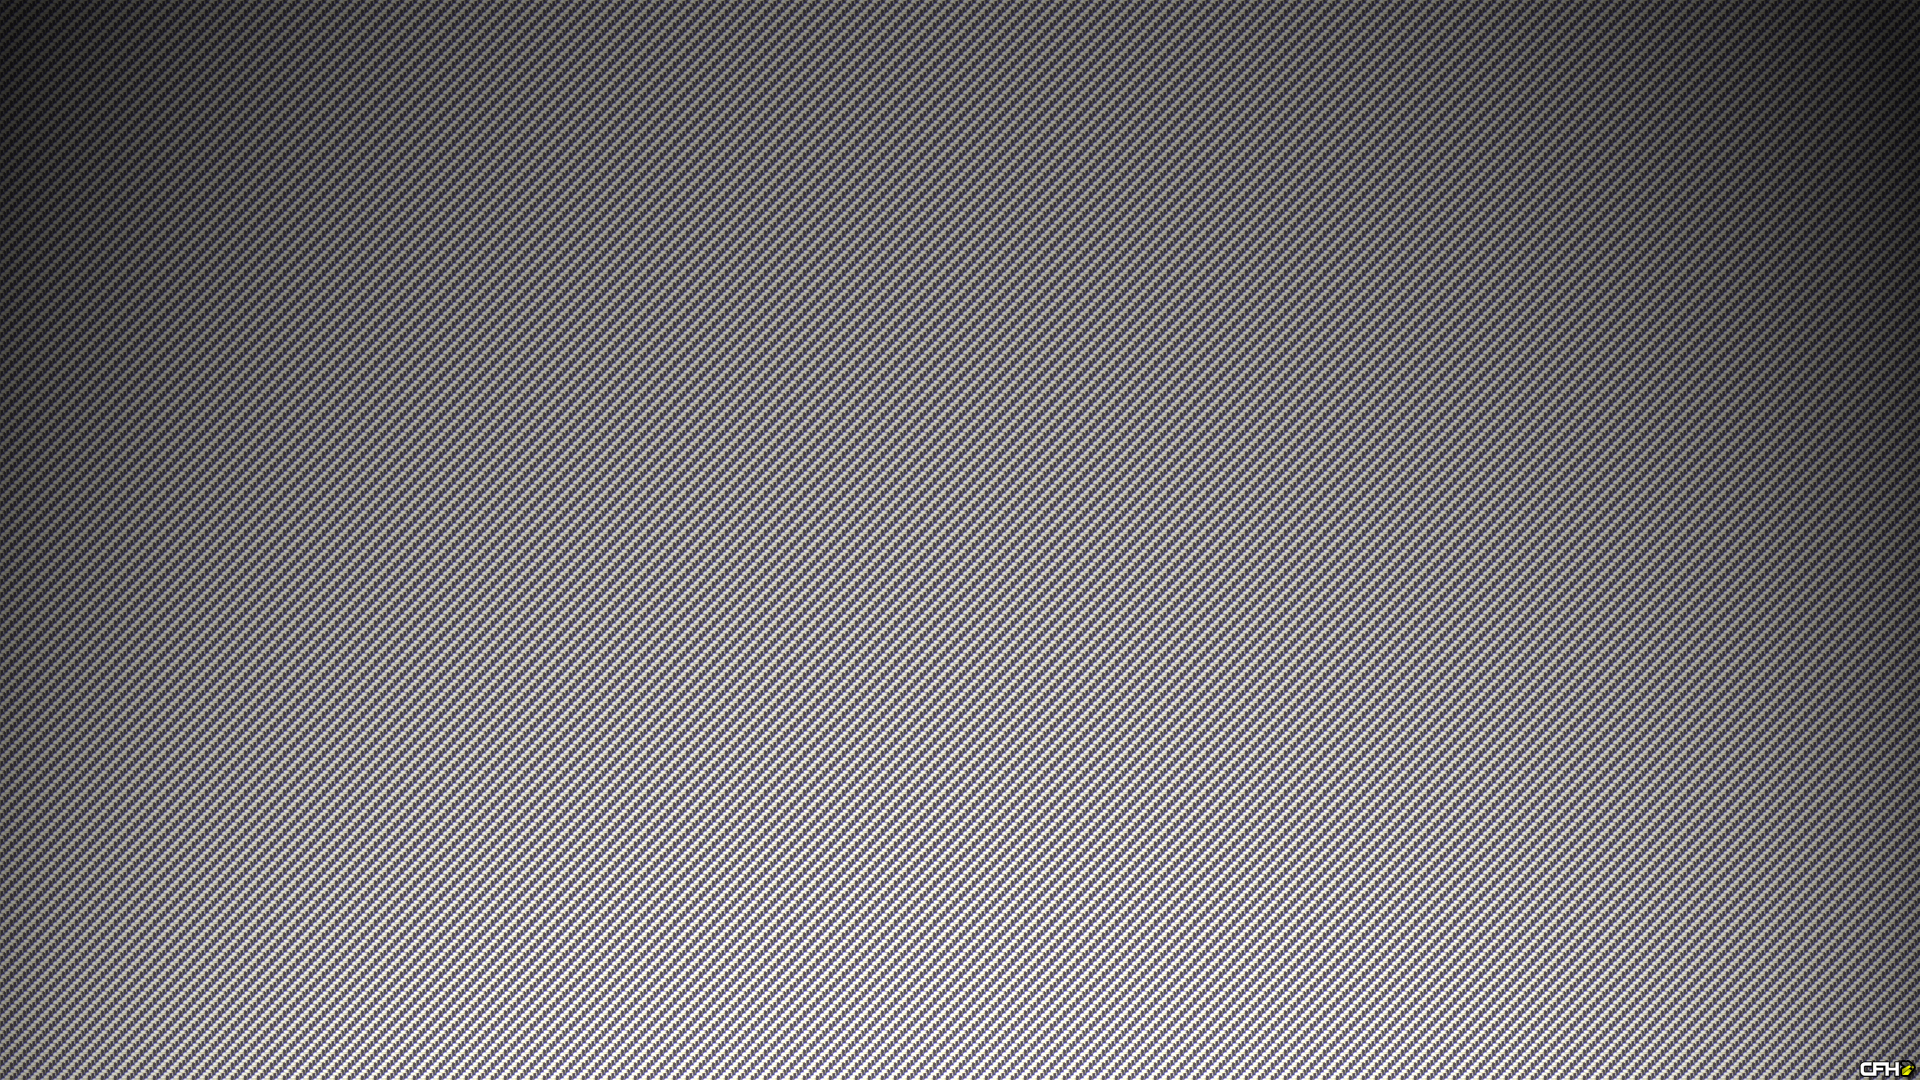 Image For 3d Carbon Wallpaper Hd Background